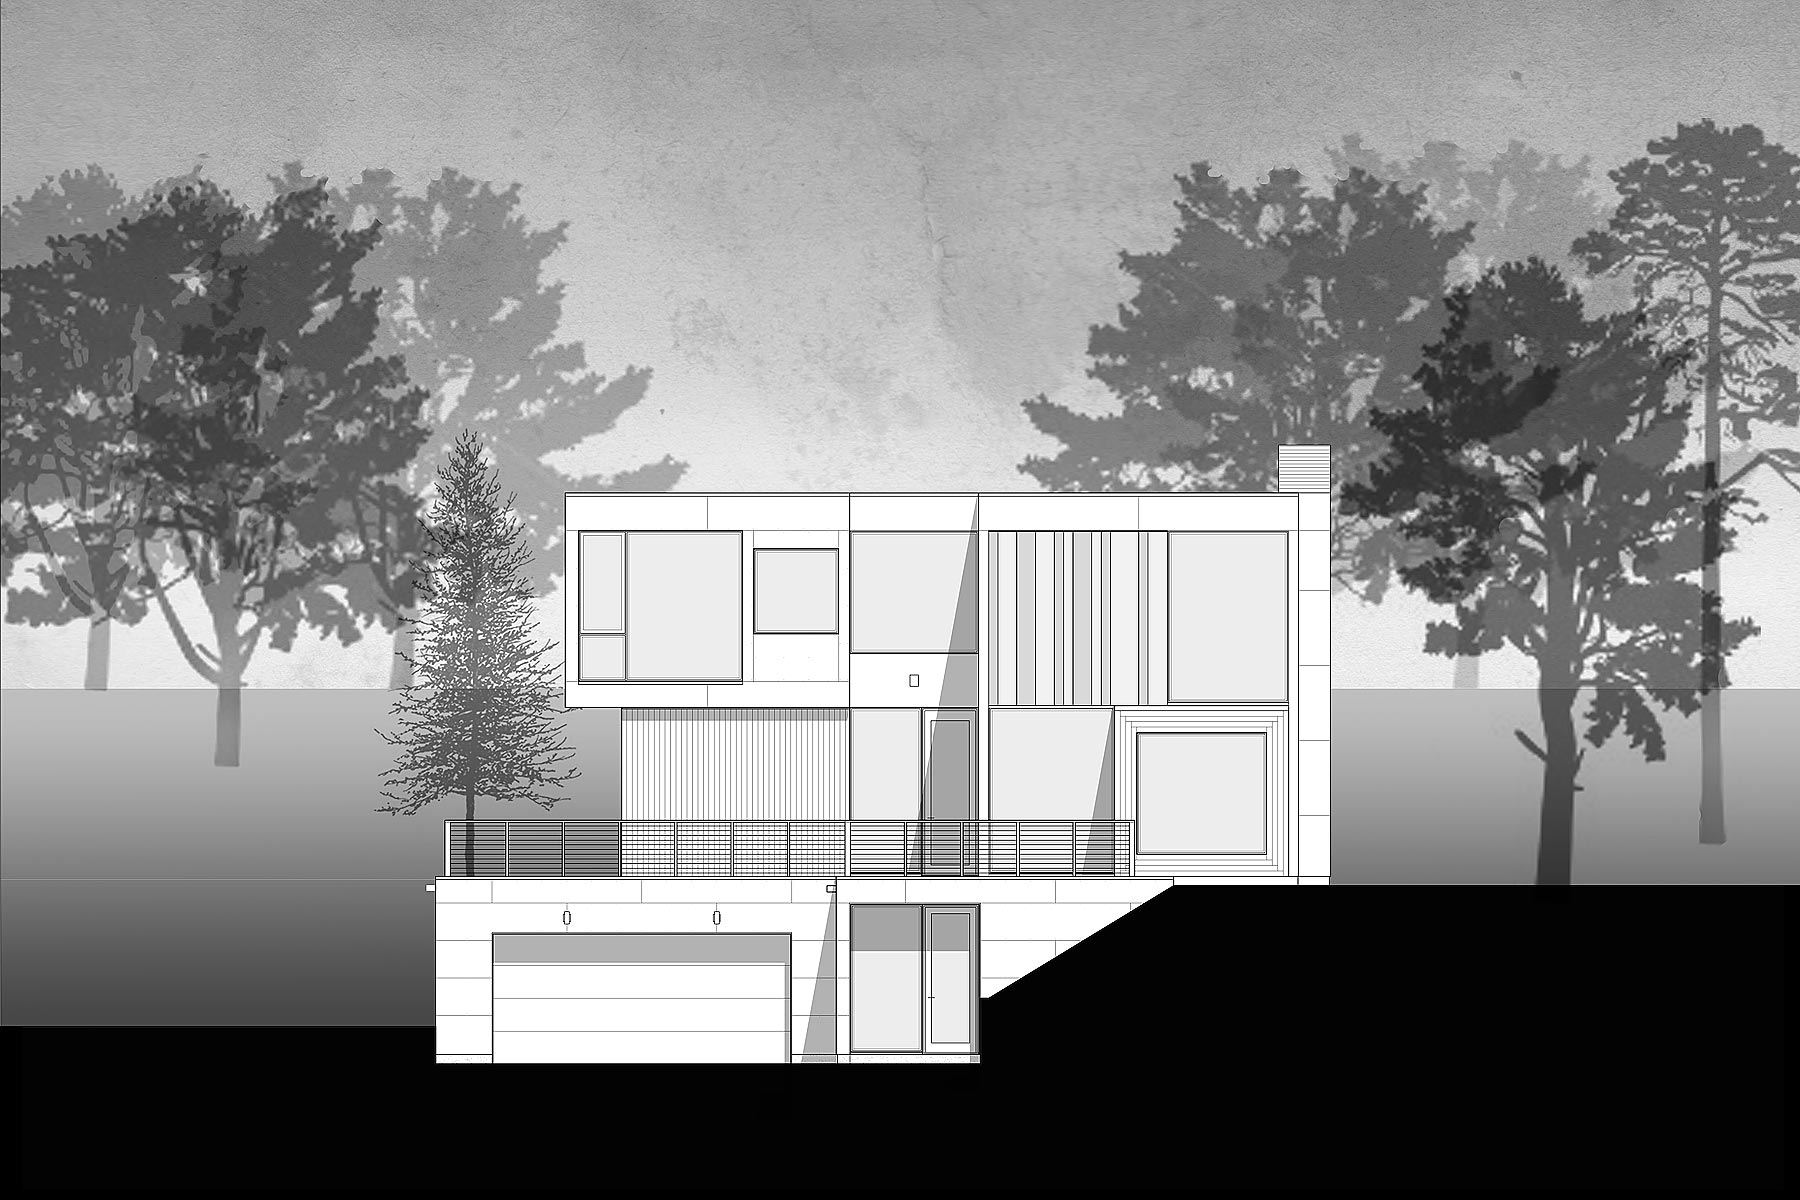 ALTUS-forest-lane-house-south-elevation.jpg